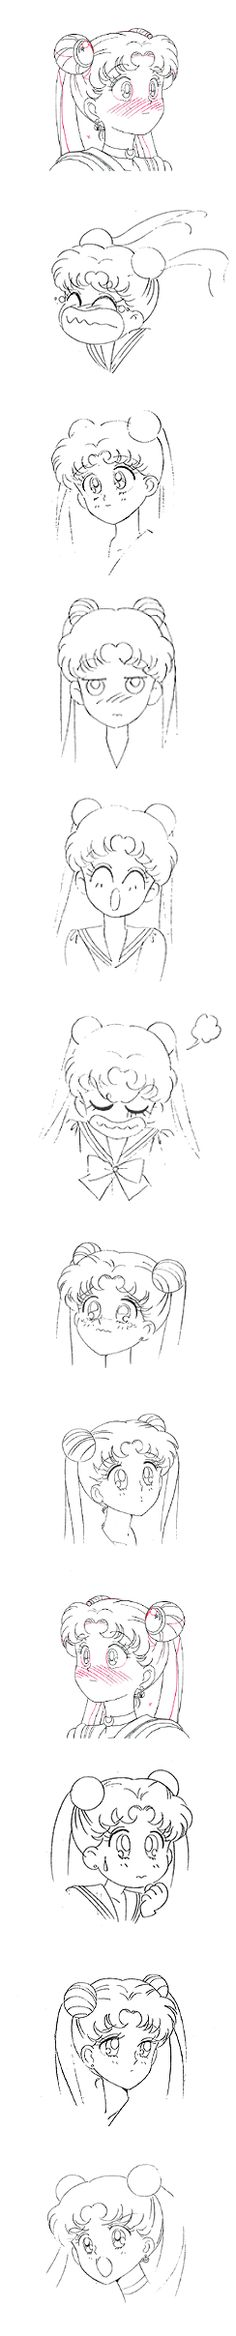 """Usagi Tsukino (Sailor Moon)"" by 武内 直子 Naoko Takeuchi* 